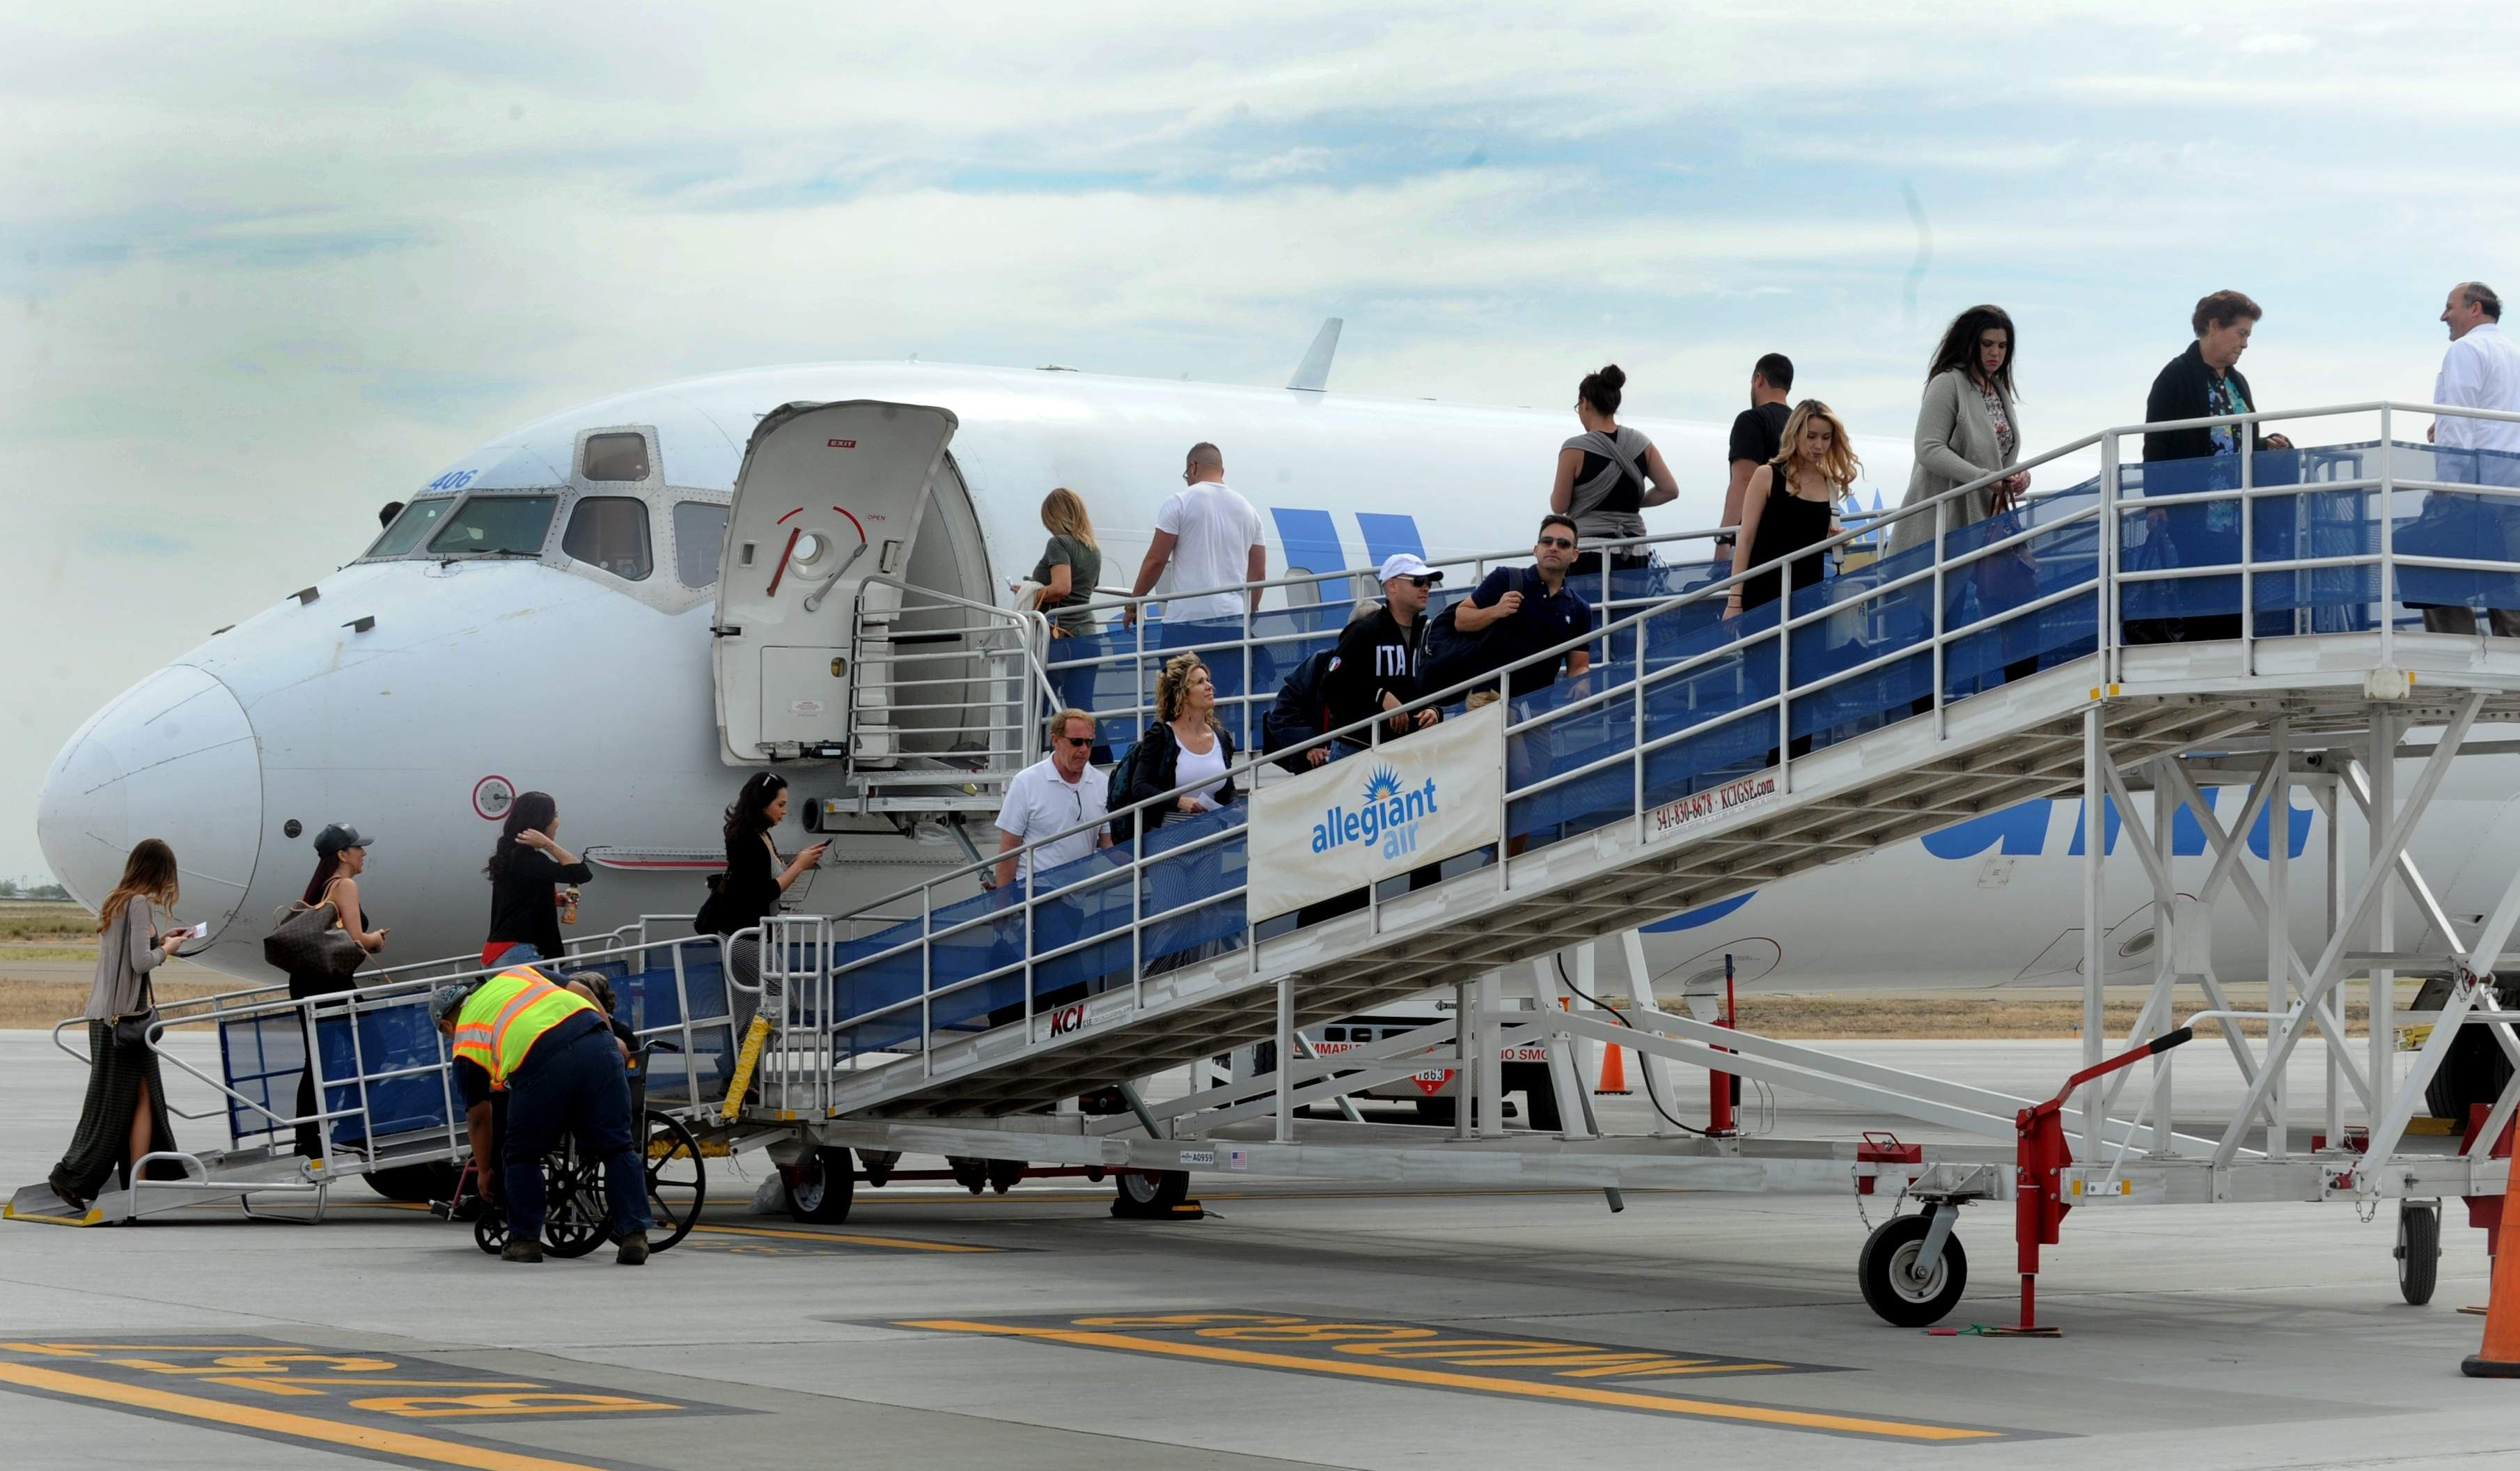 Flights To San Diego From Stockton Take Off San Travel And